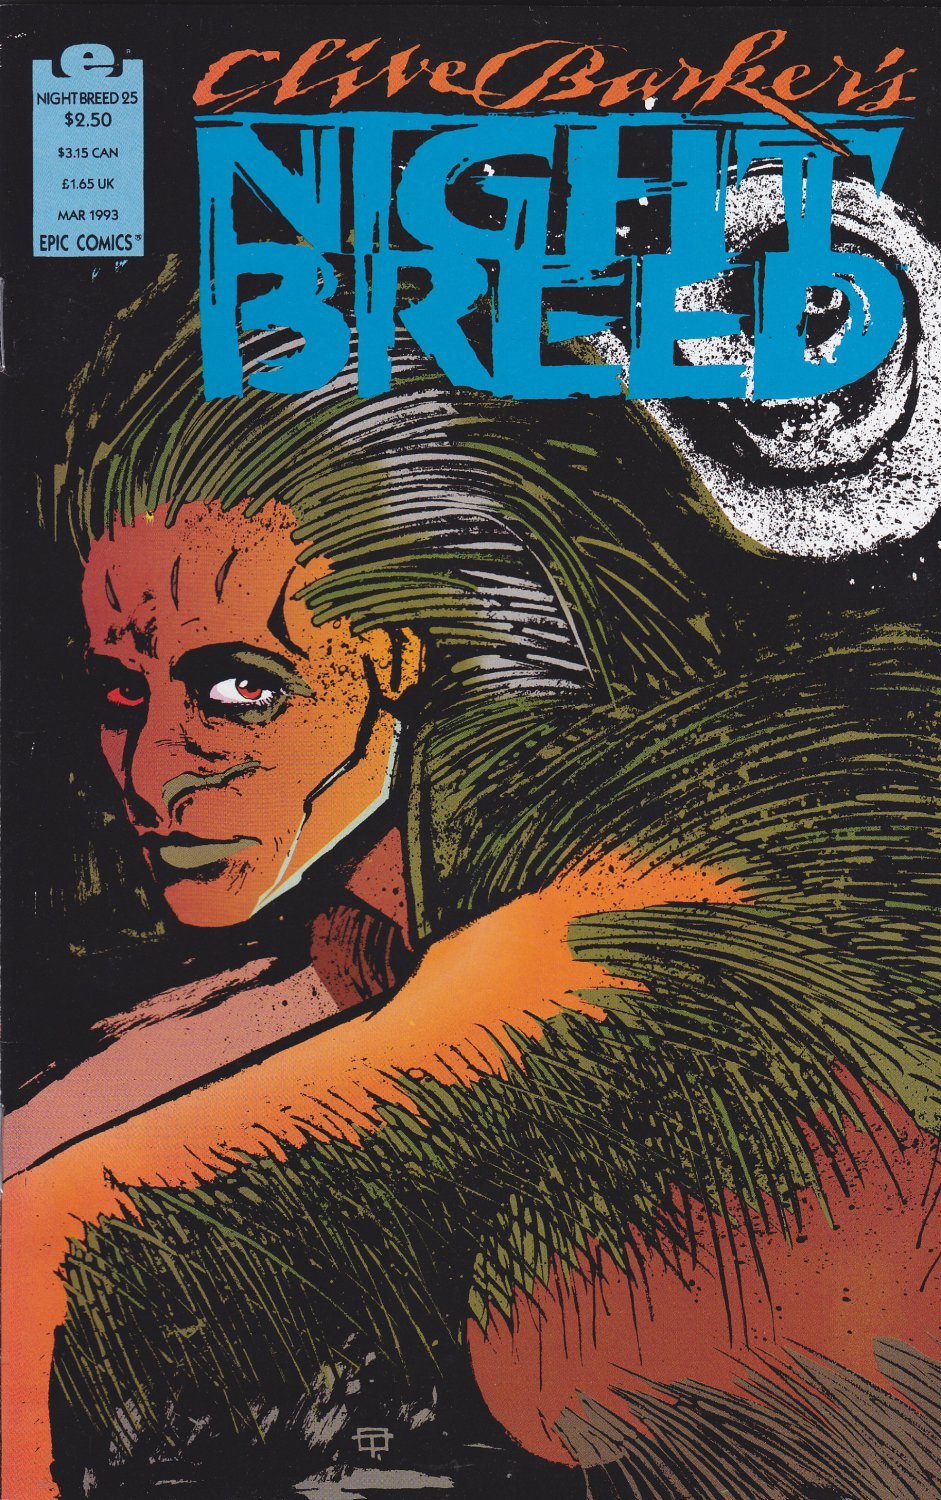 Clive Barker's Night Breed #25